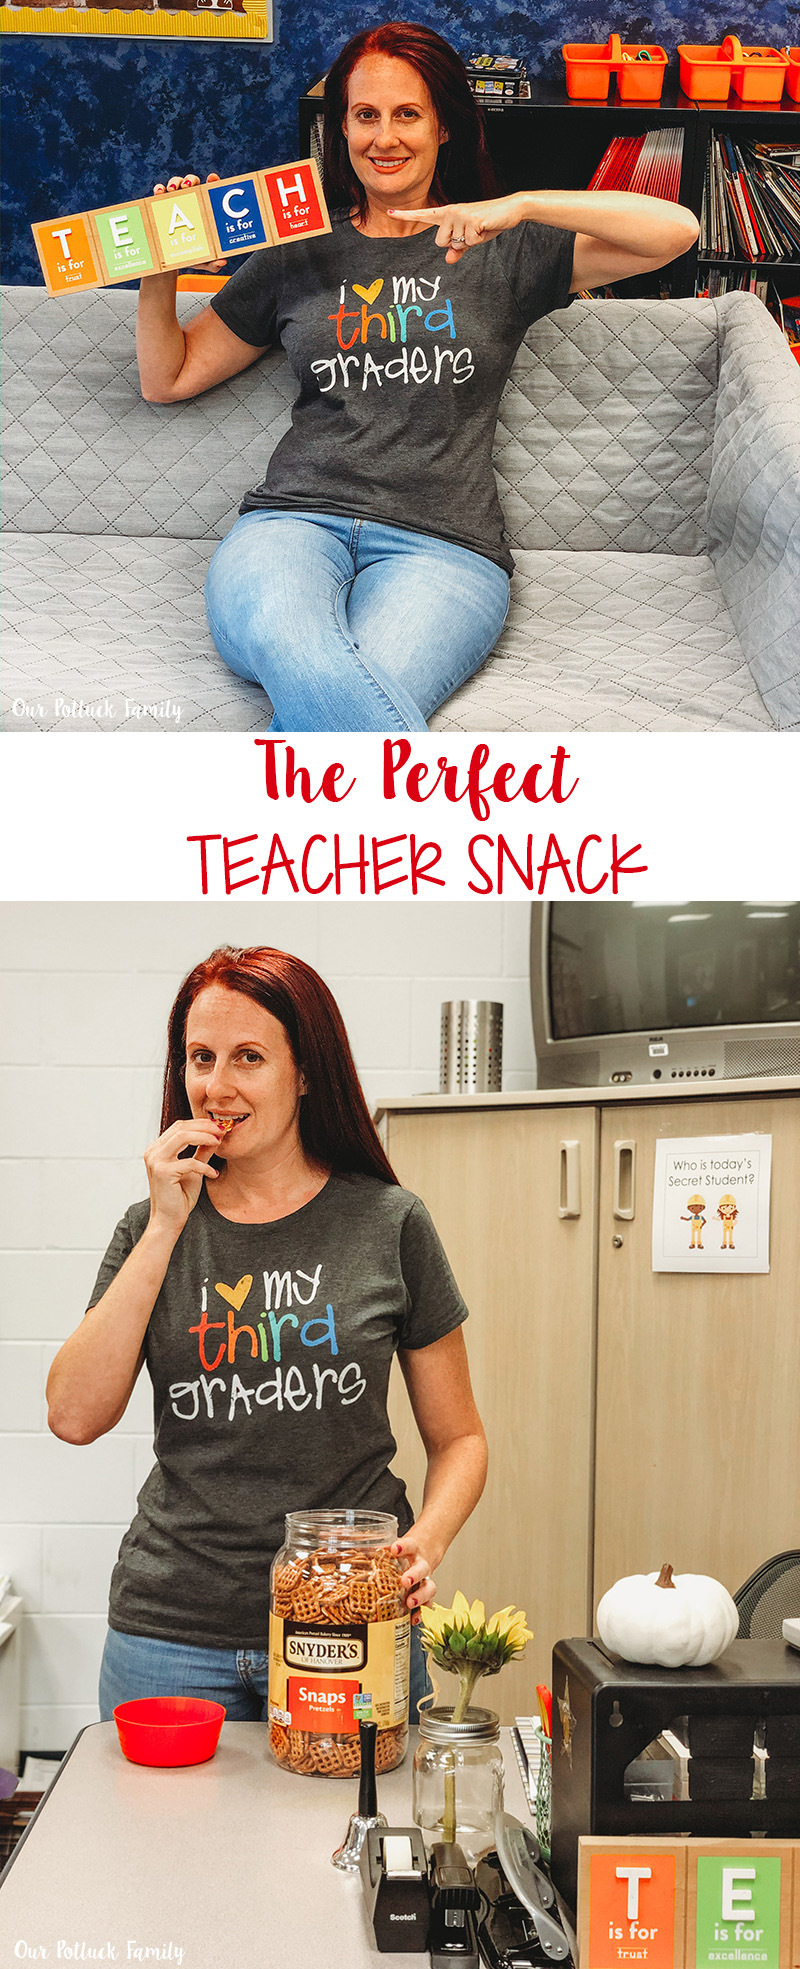 The Perfect Teacher Snack